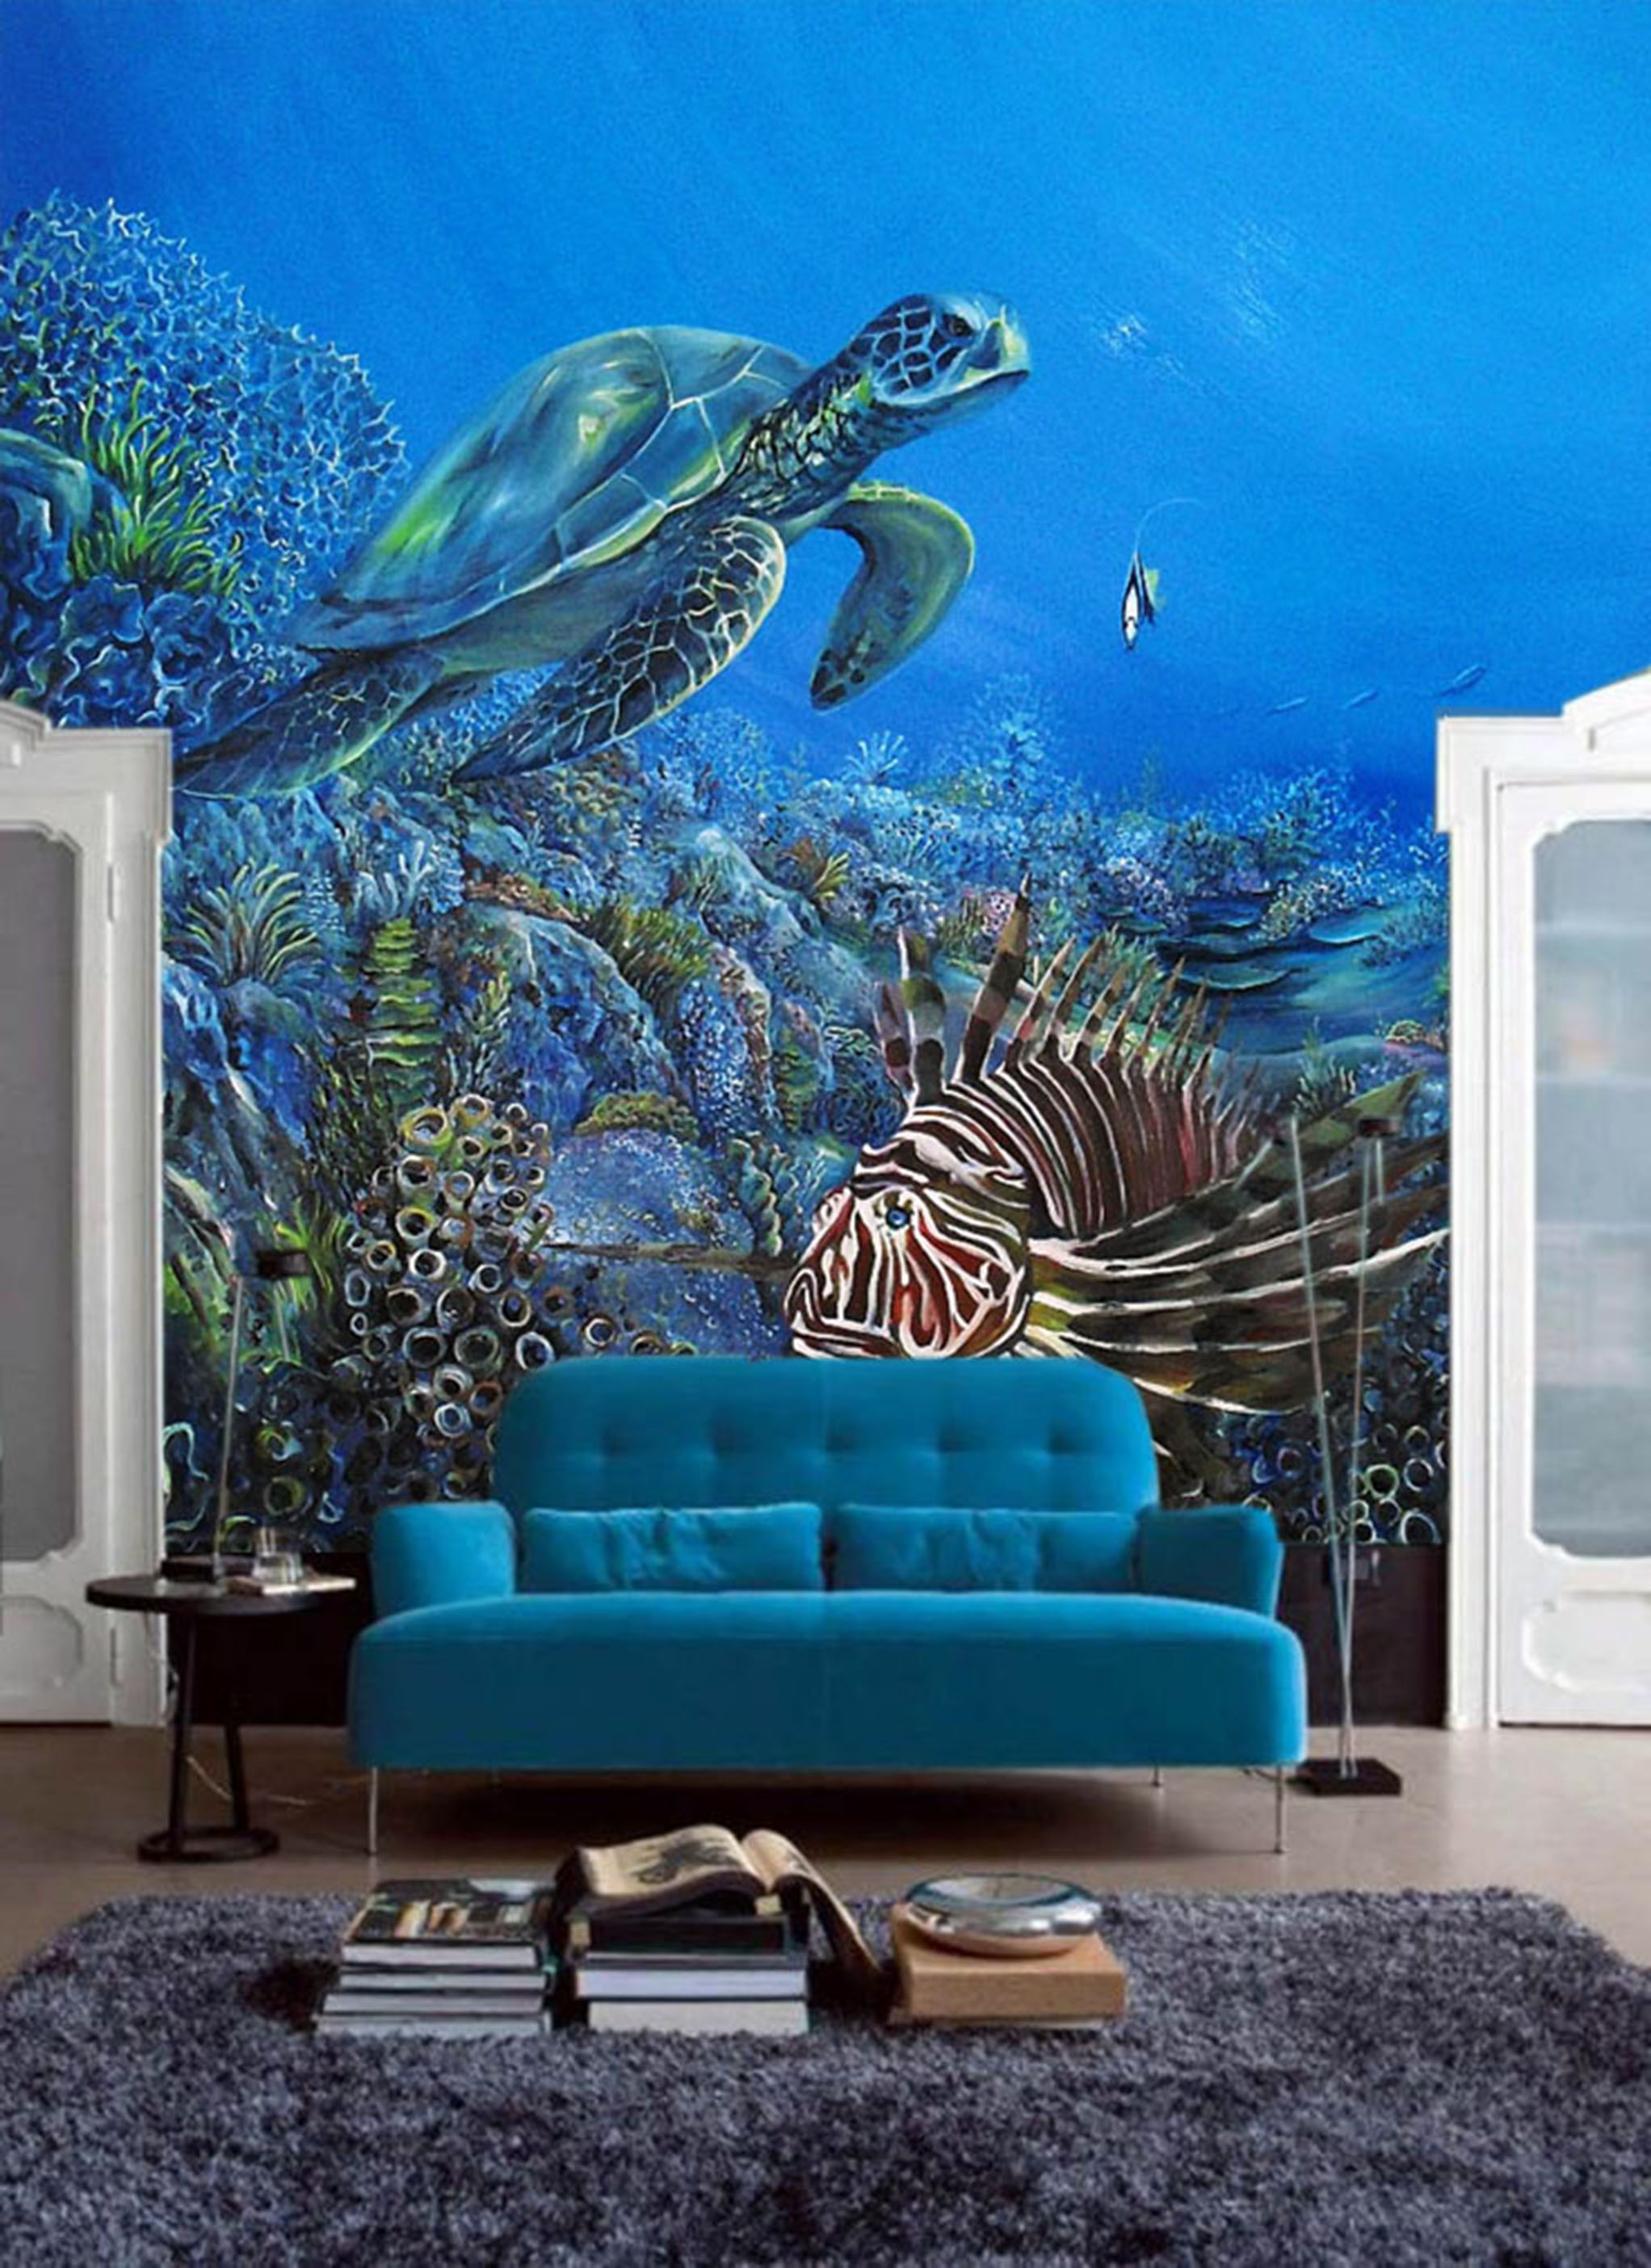 Turtle and Fish Mural by MMAD